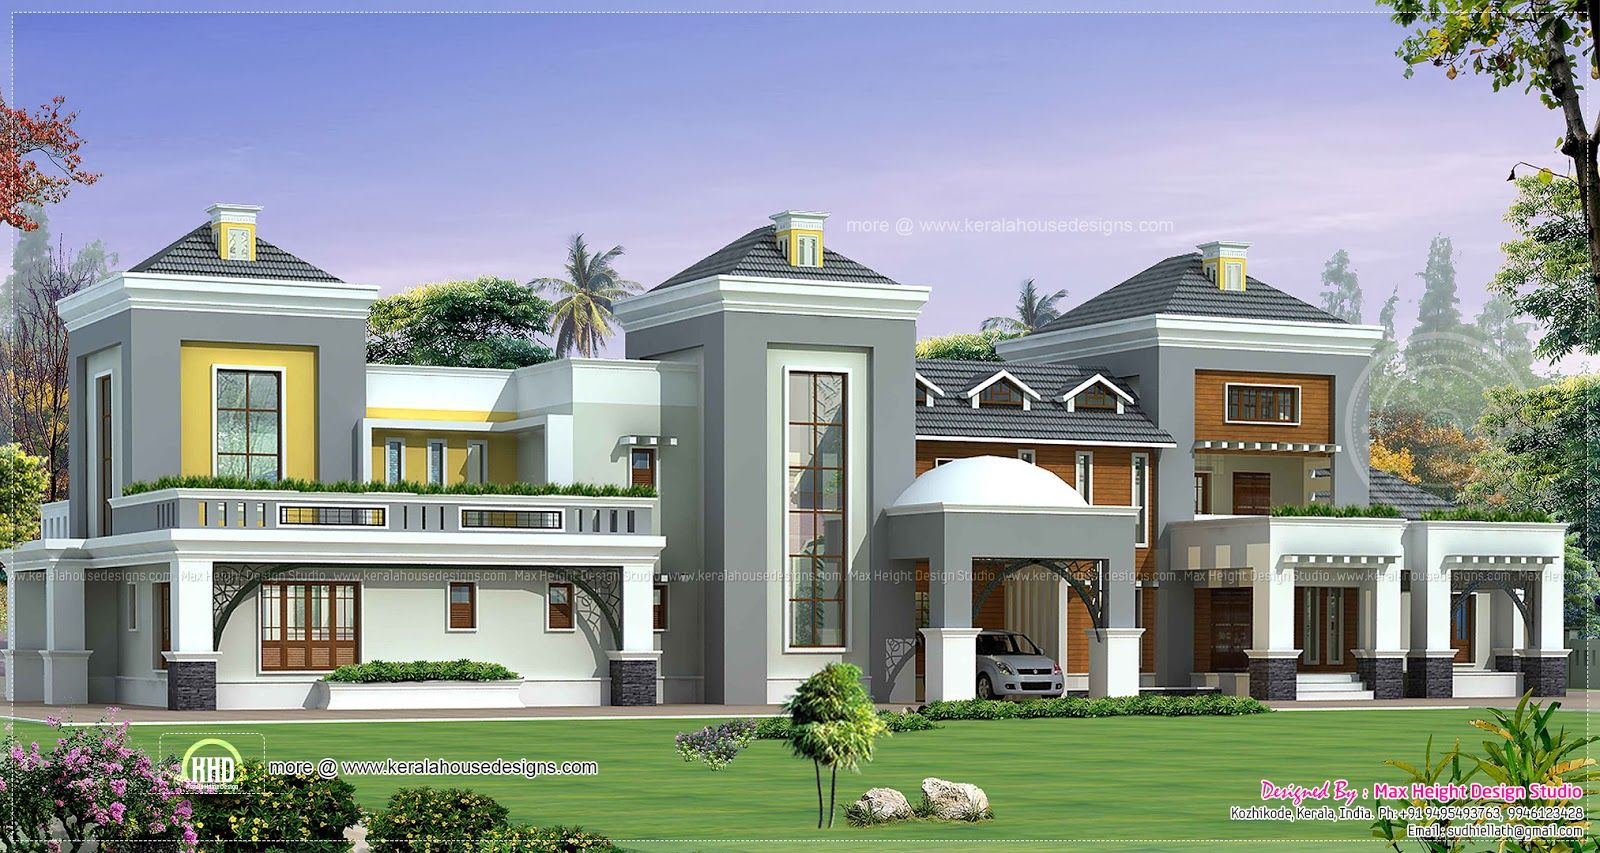 Fancy houses mansions indian house designs kerala house design cool house designs house